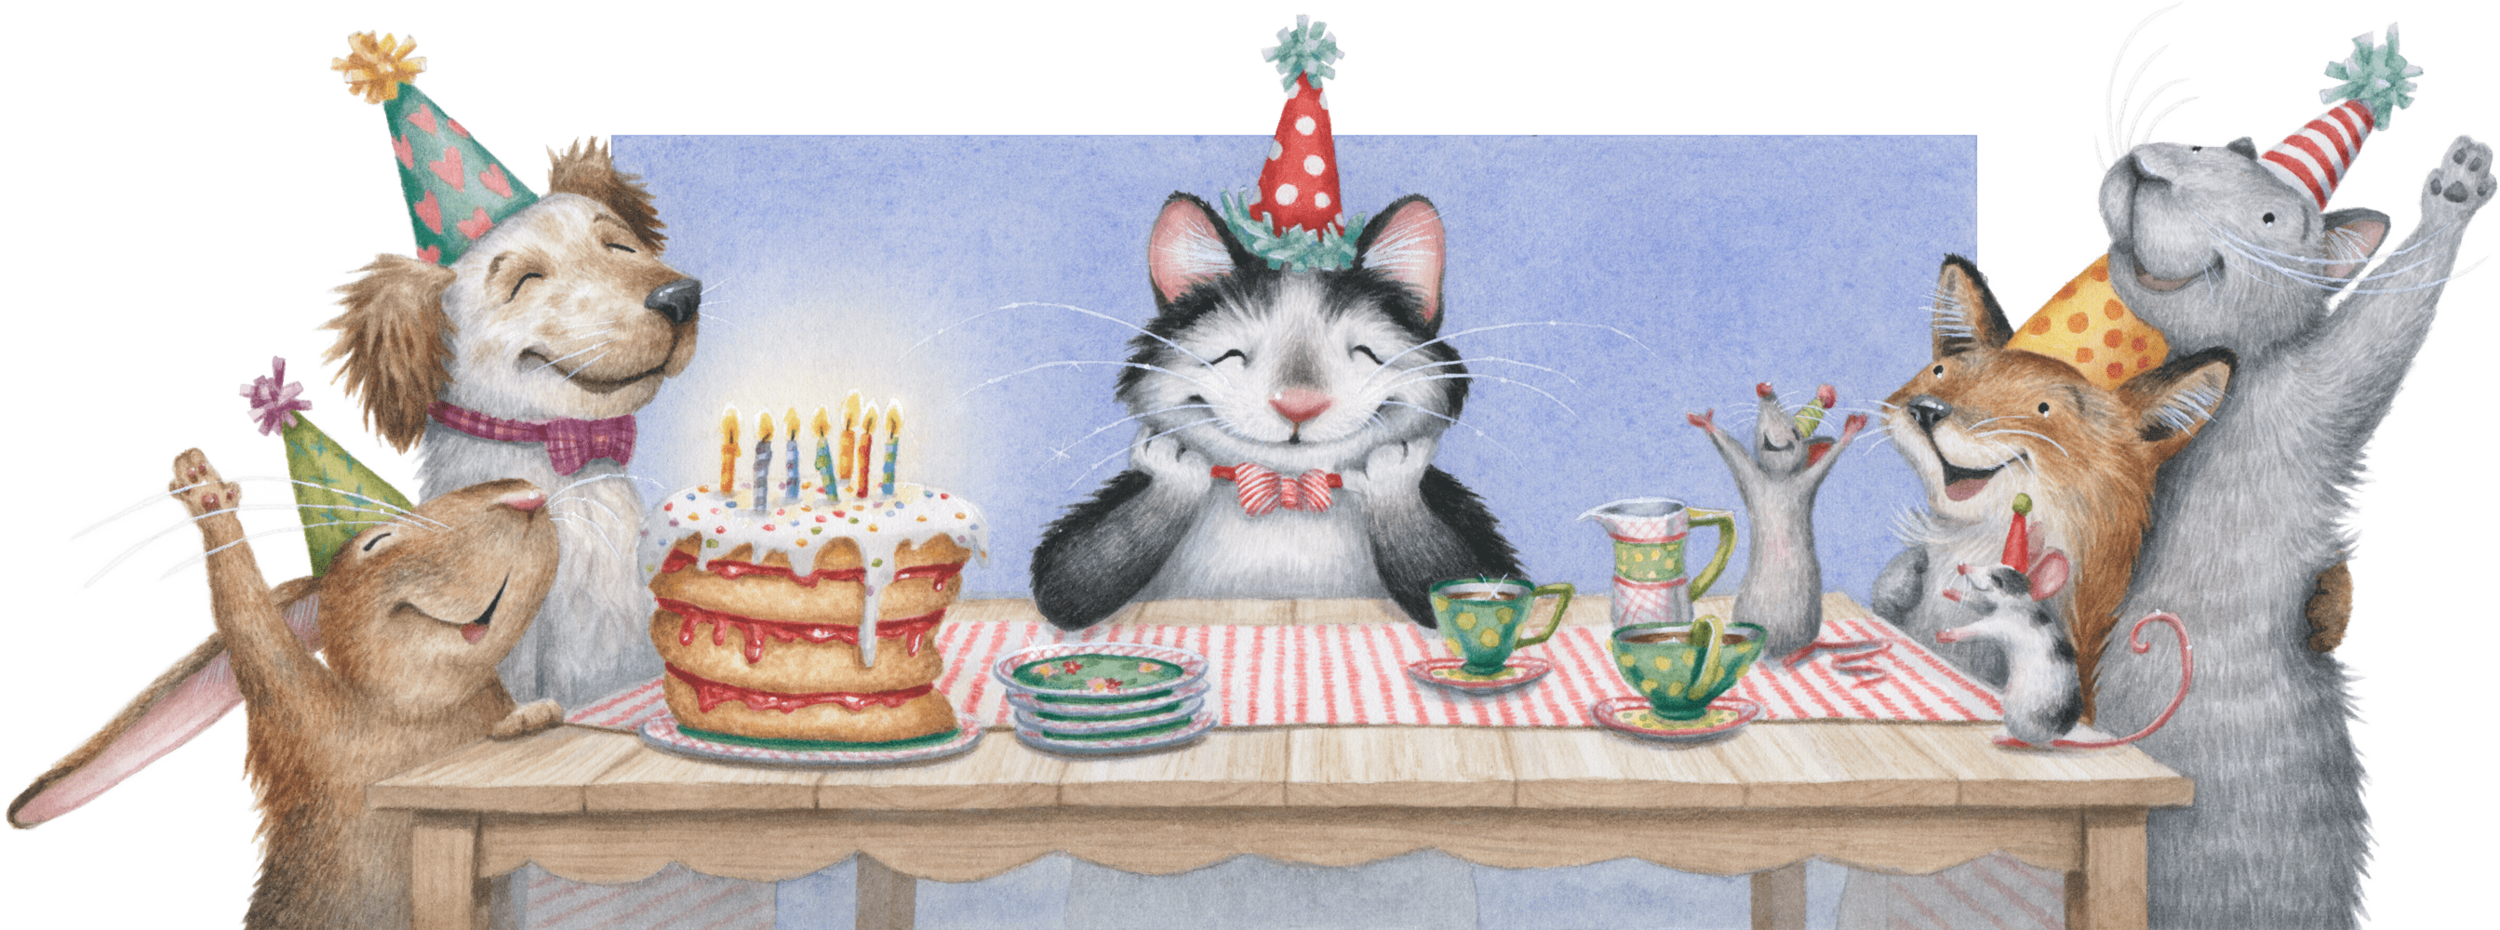 happy-bday-animals-kristin-makarius-min.png